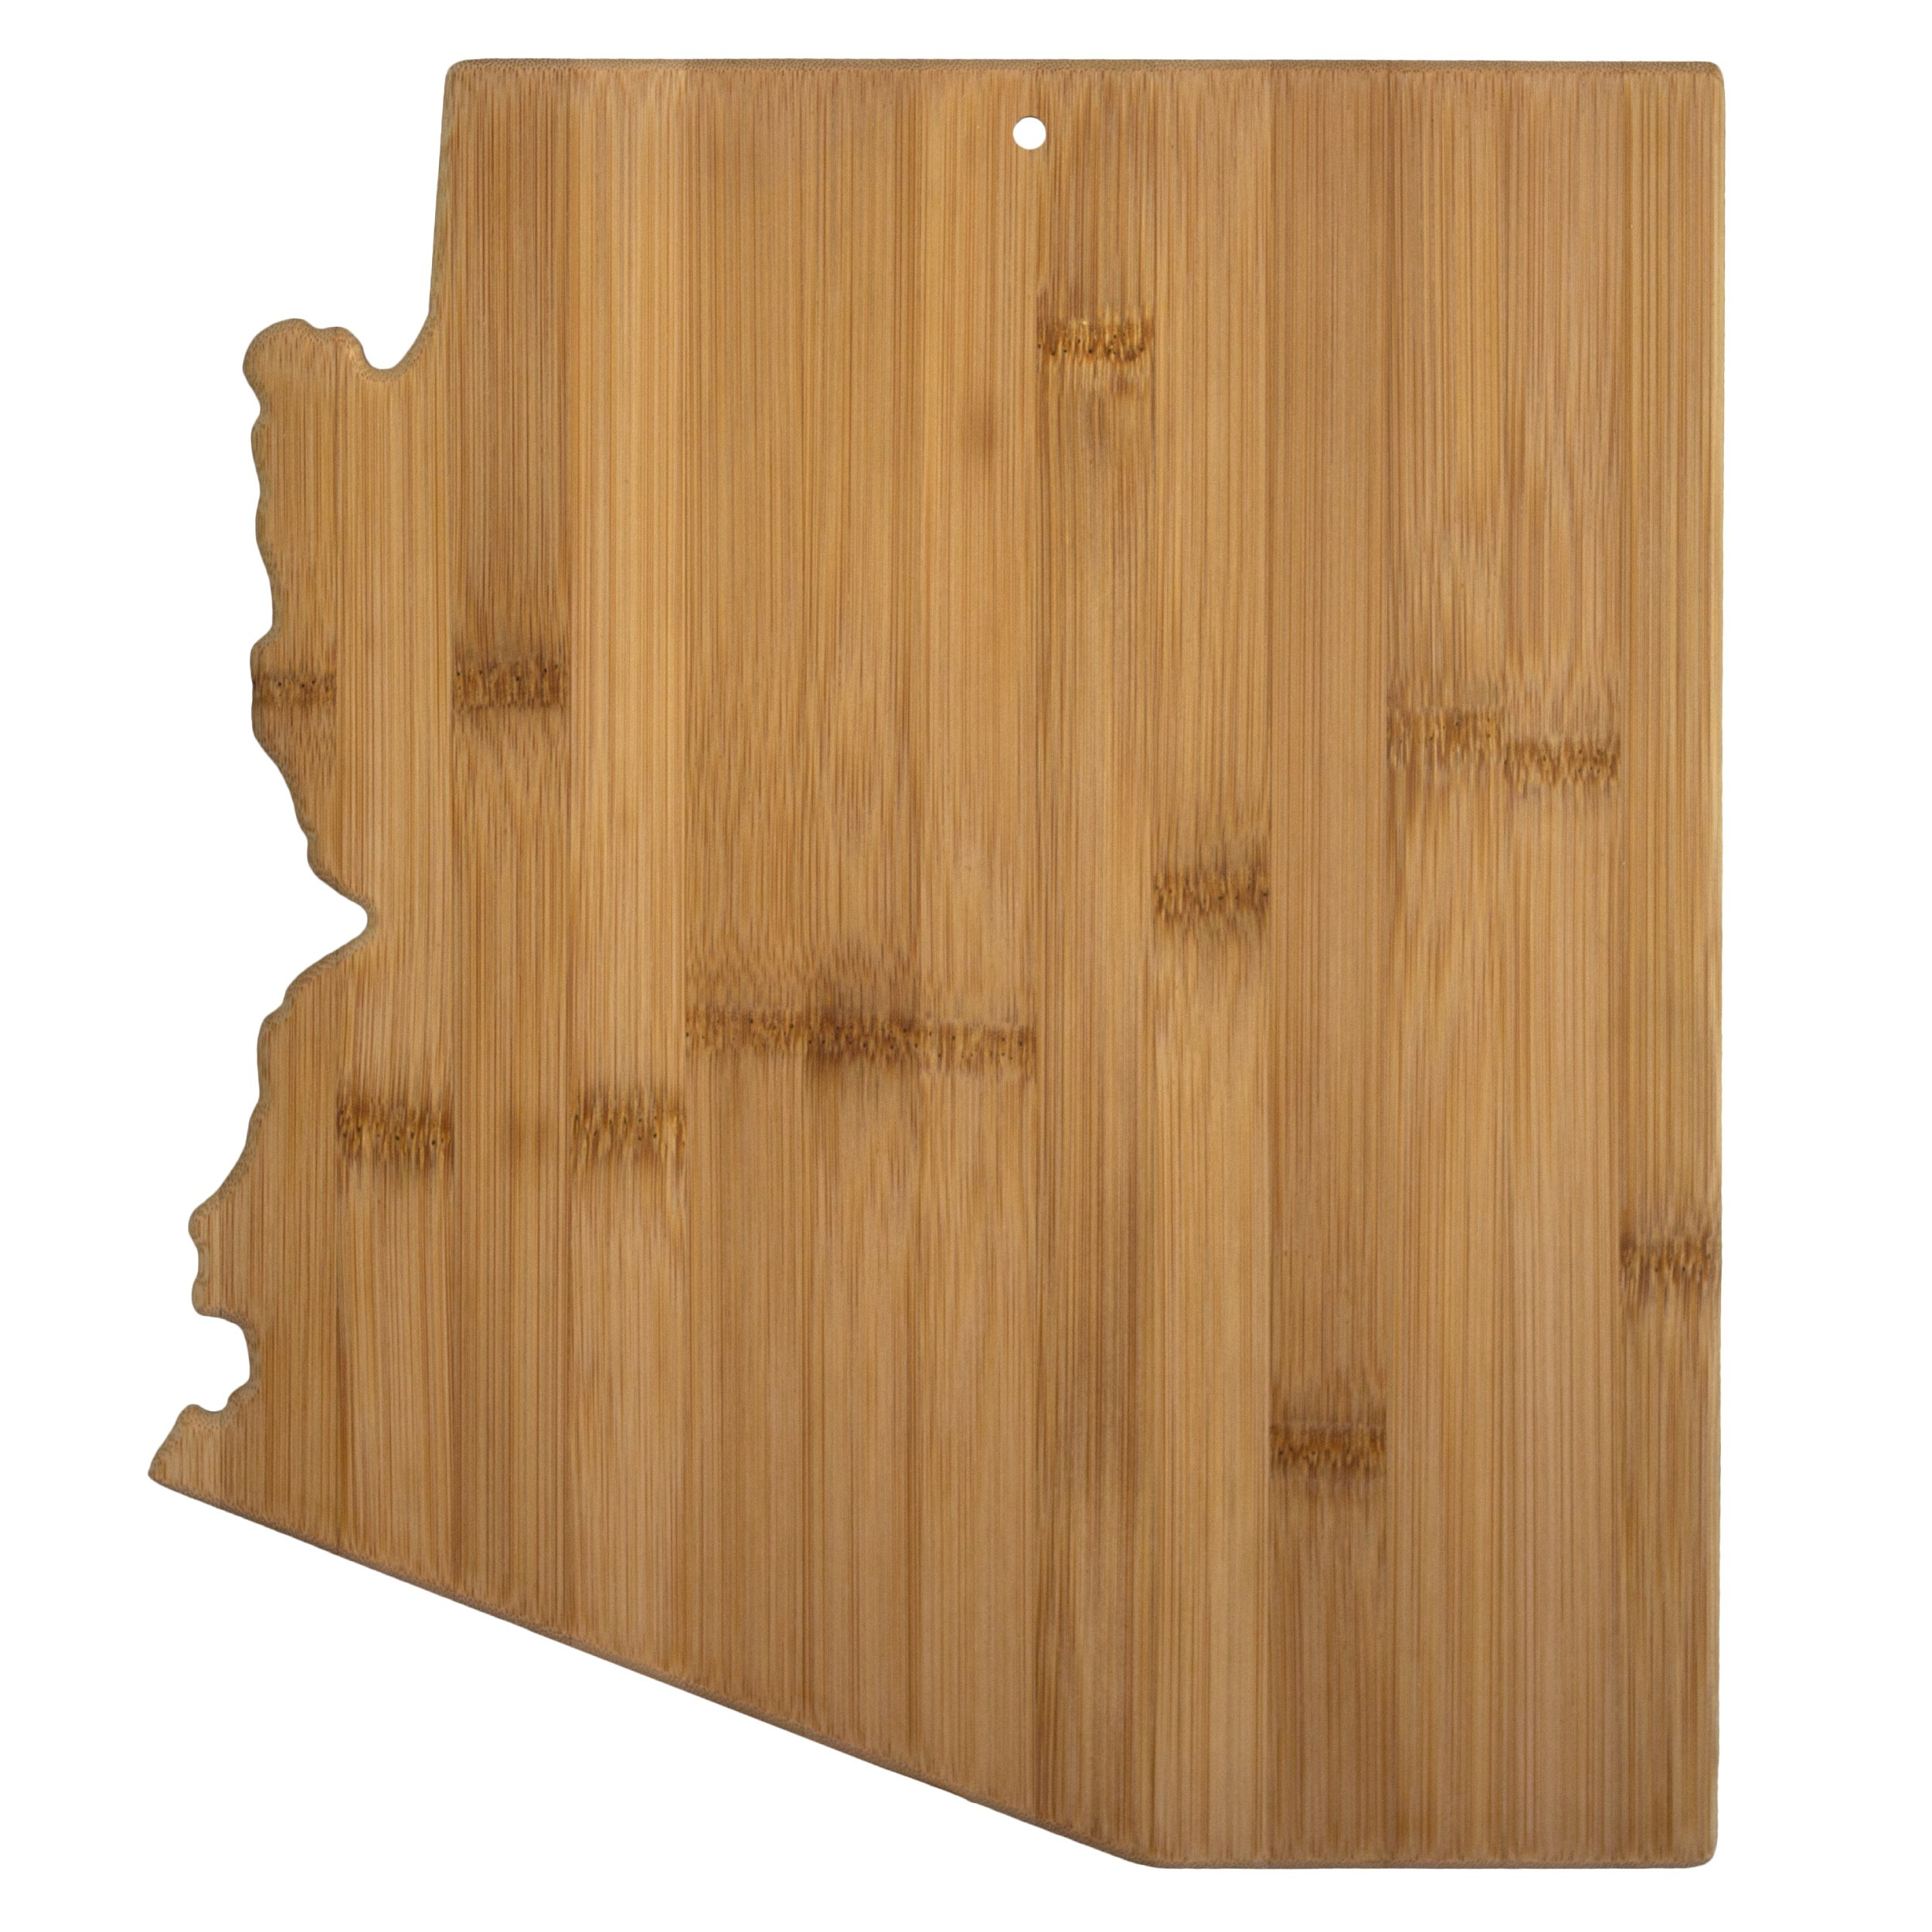 Totally Bamboo Arizona State Shaped Bamboo Serving and Cutting Board